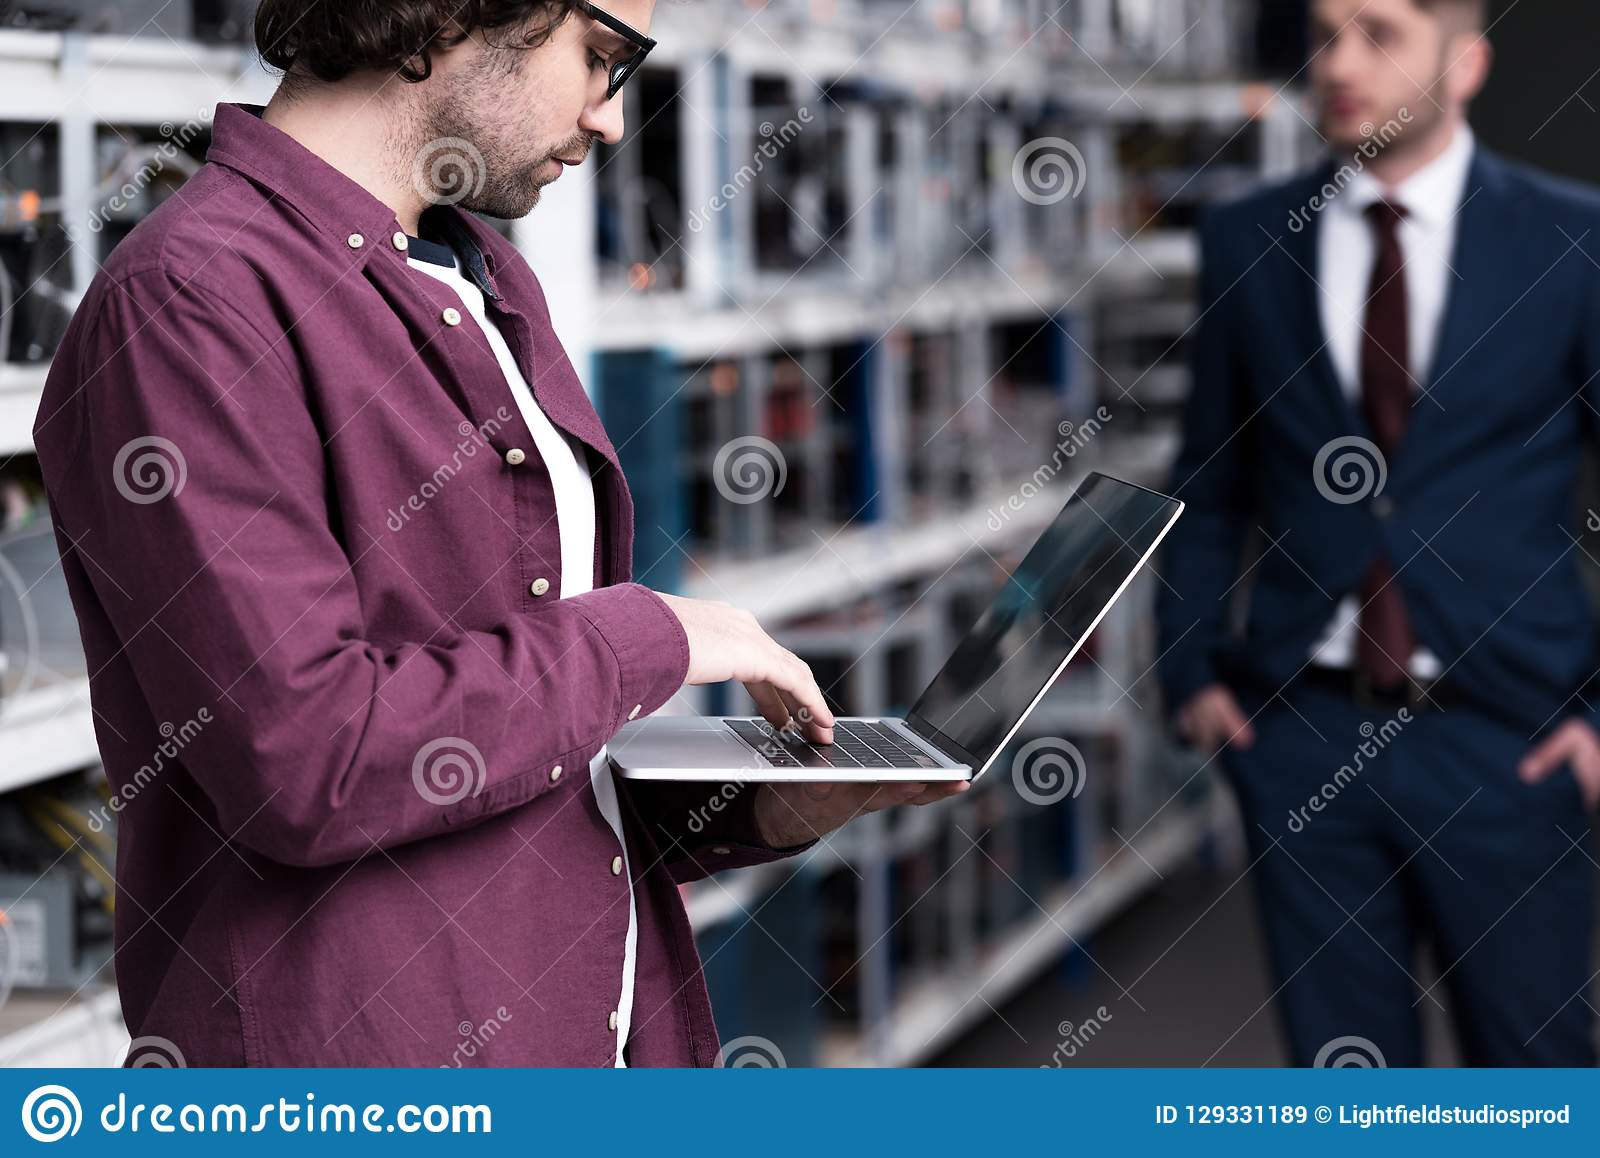 Businessman and computer engineer at ethereum mining farm royalty free stock images